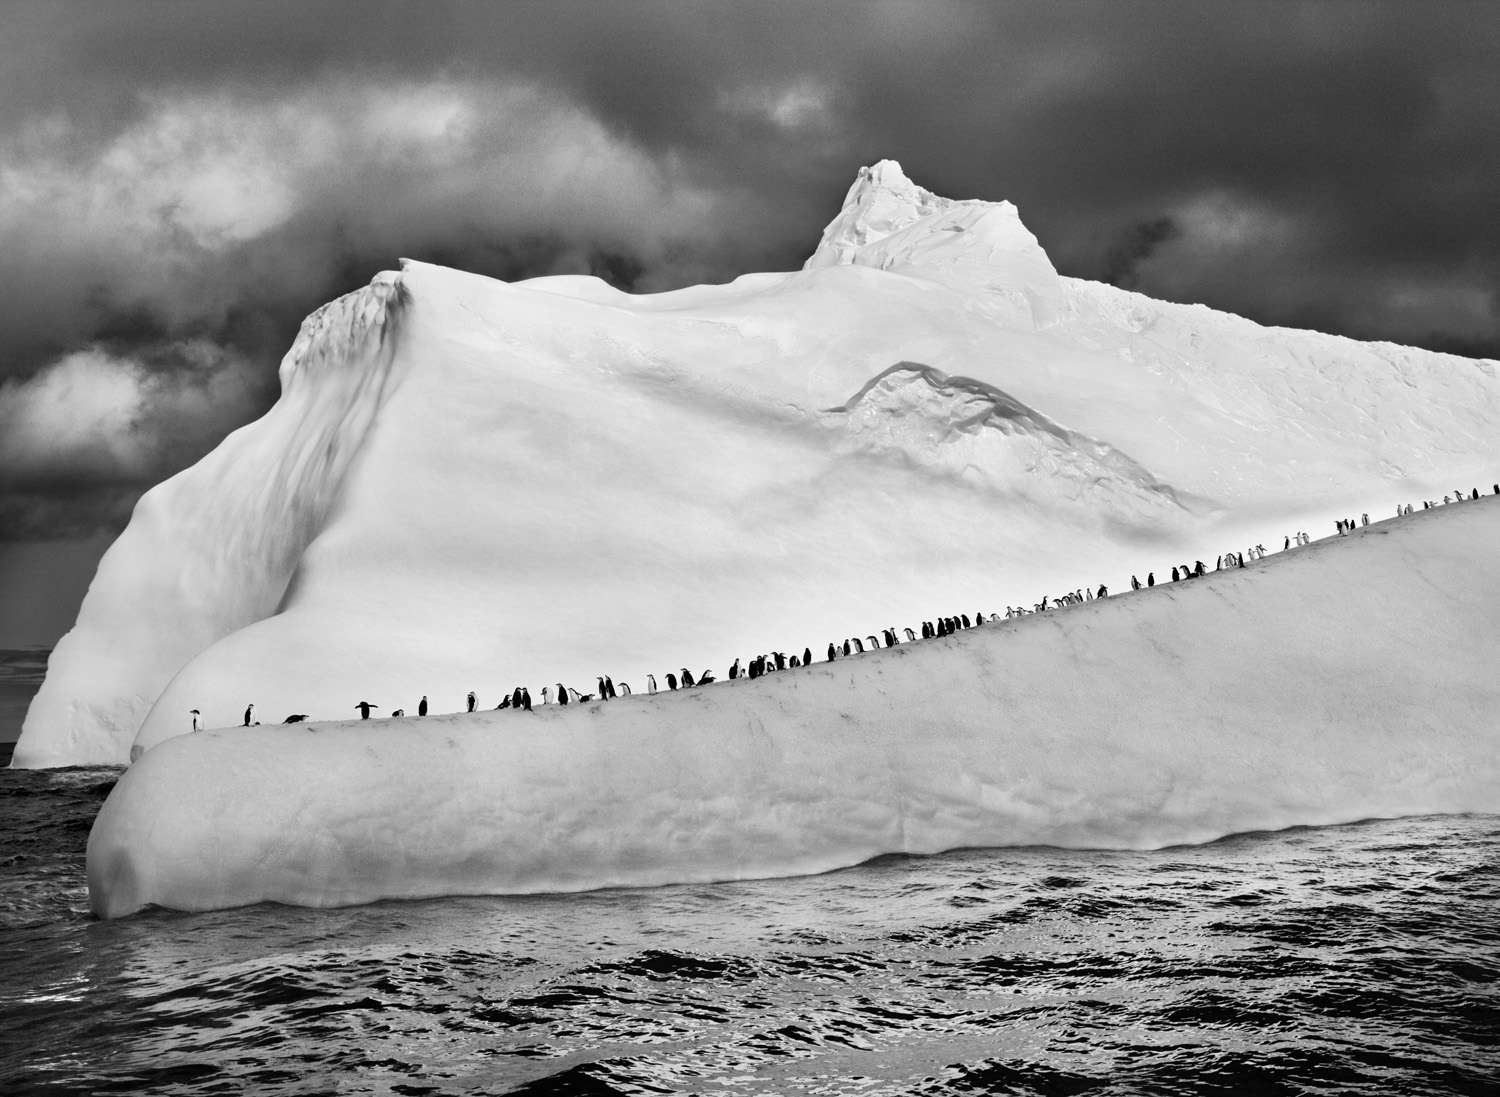 Chinstrap penguins line up along an iceberg as it floats among the South Sandwich Islands in the far South Atlantic.